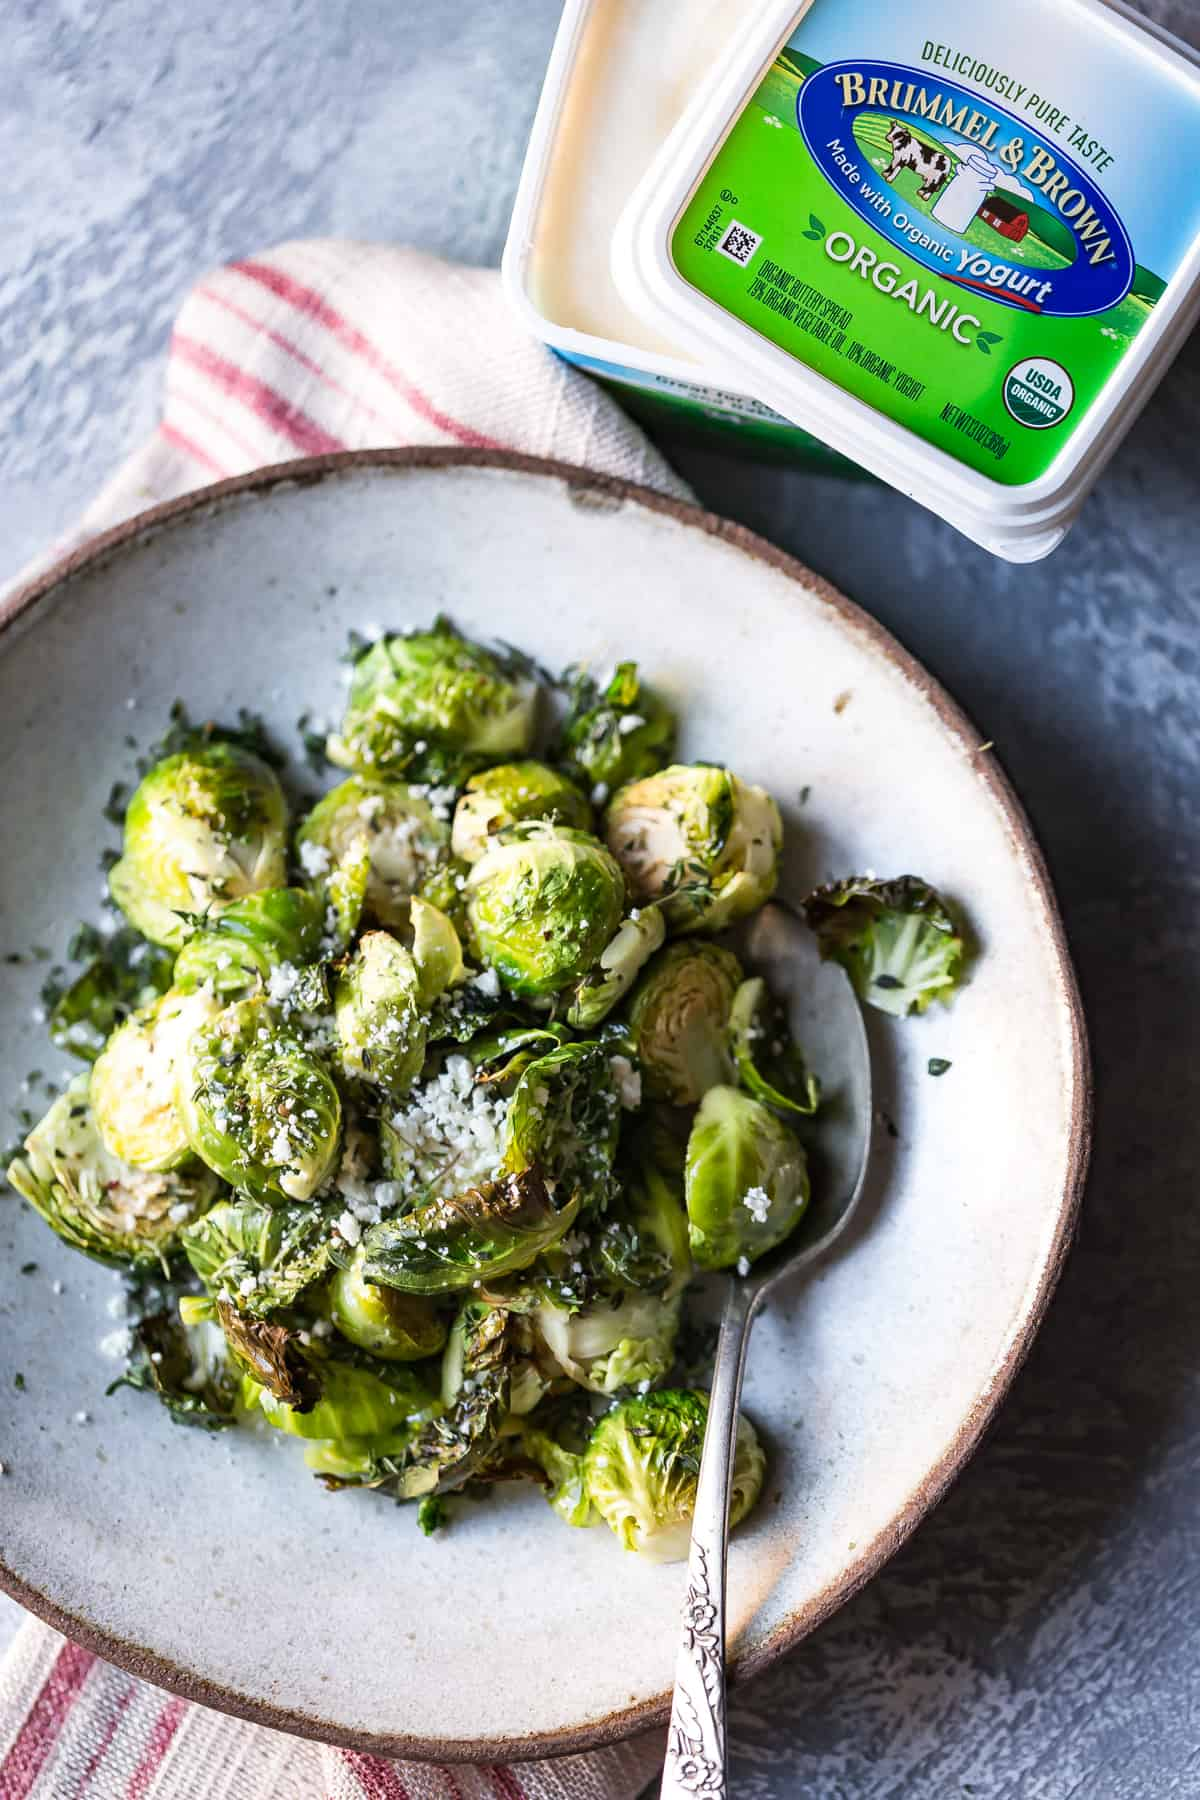 Brummell and Brown is the perfect spread to go along with these easy roasted thyme brussels sprouts!